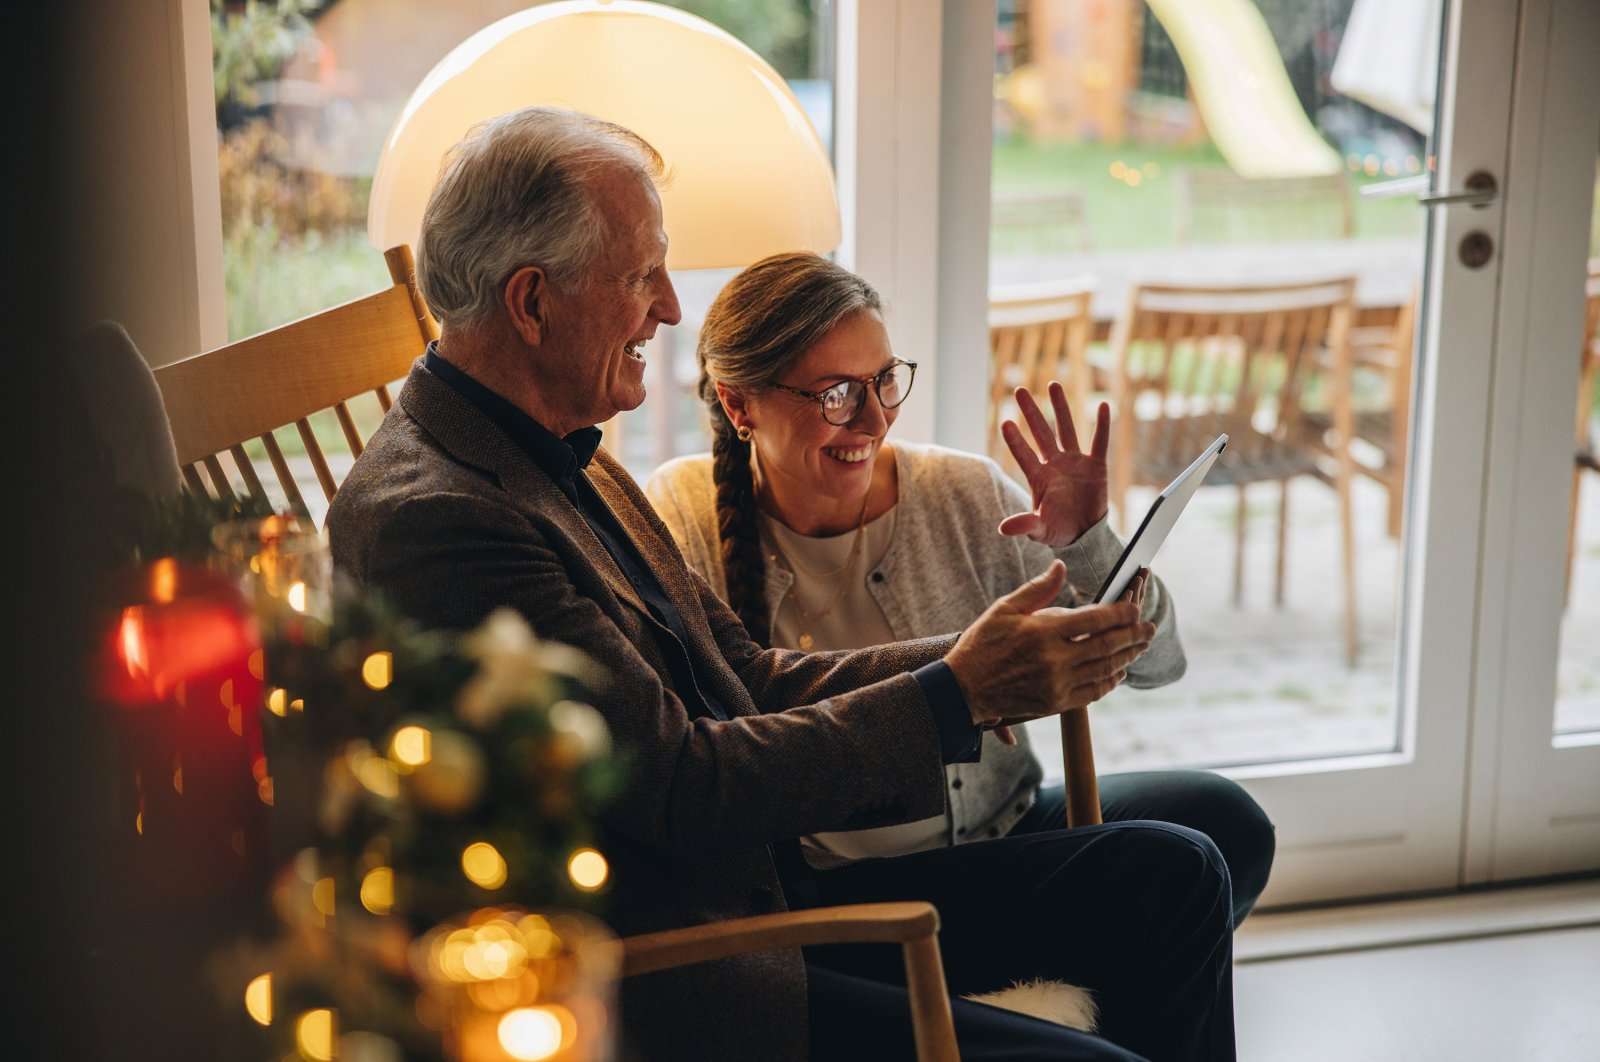 The holiday season can be difficult for families as it is but the risks and restrictions around coronavirus make things tougher than ever. (Shutterstock Photo)